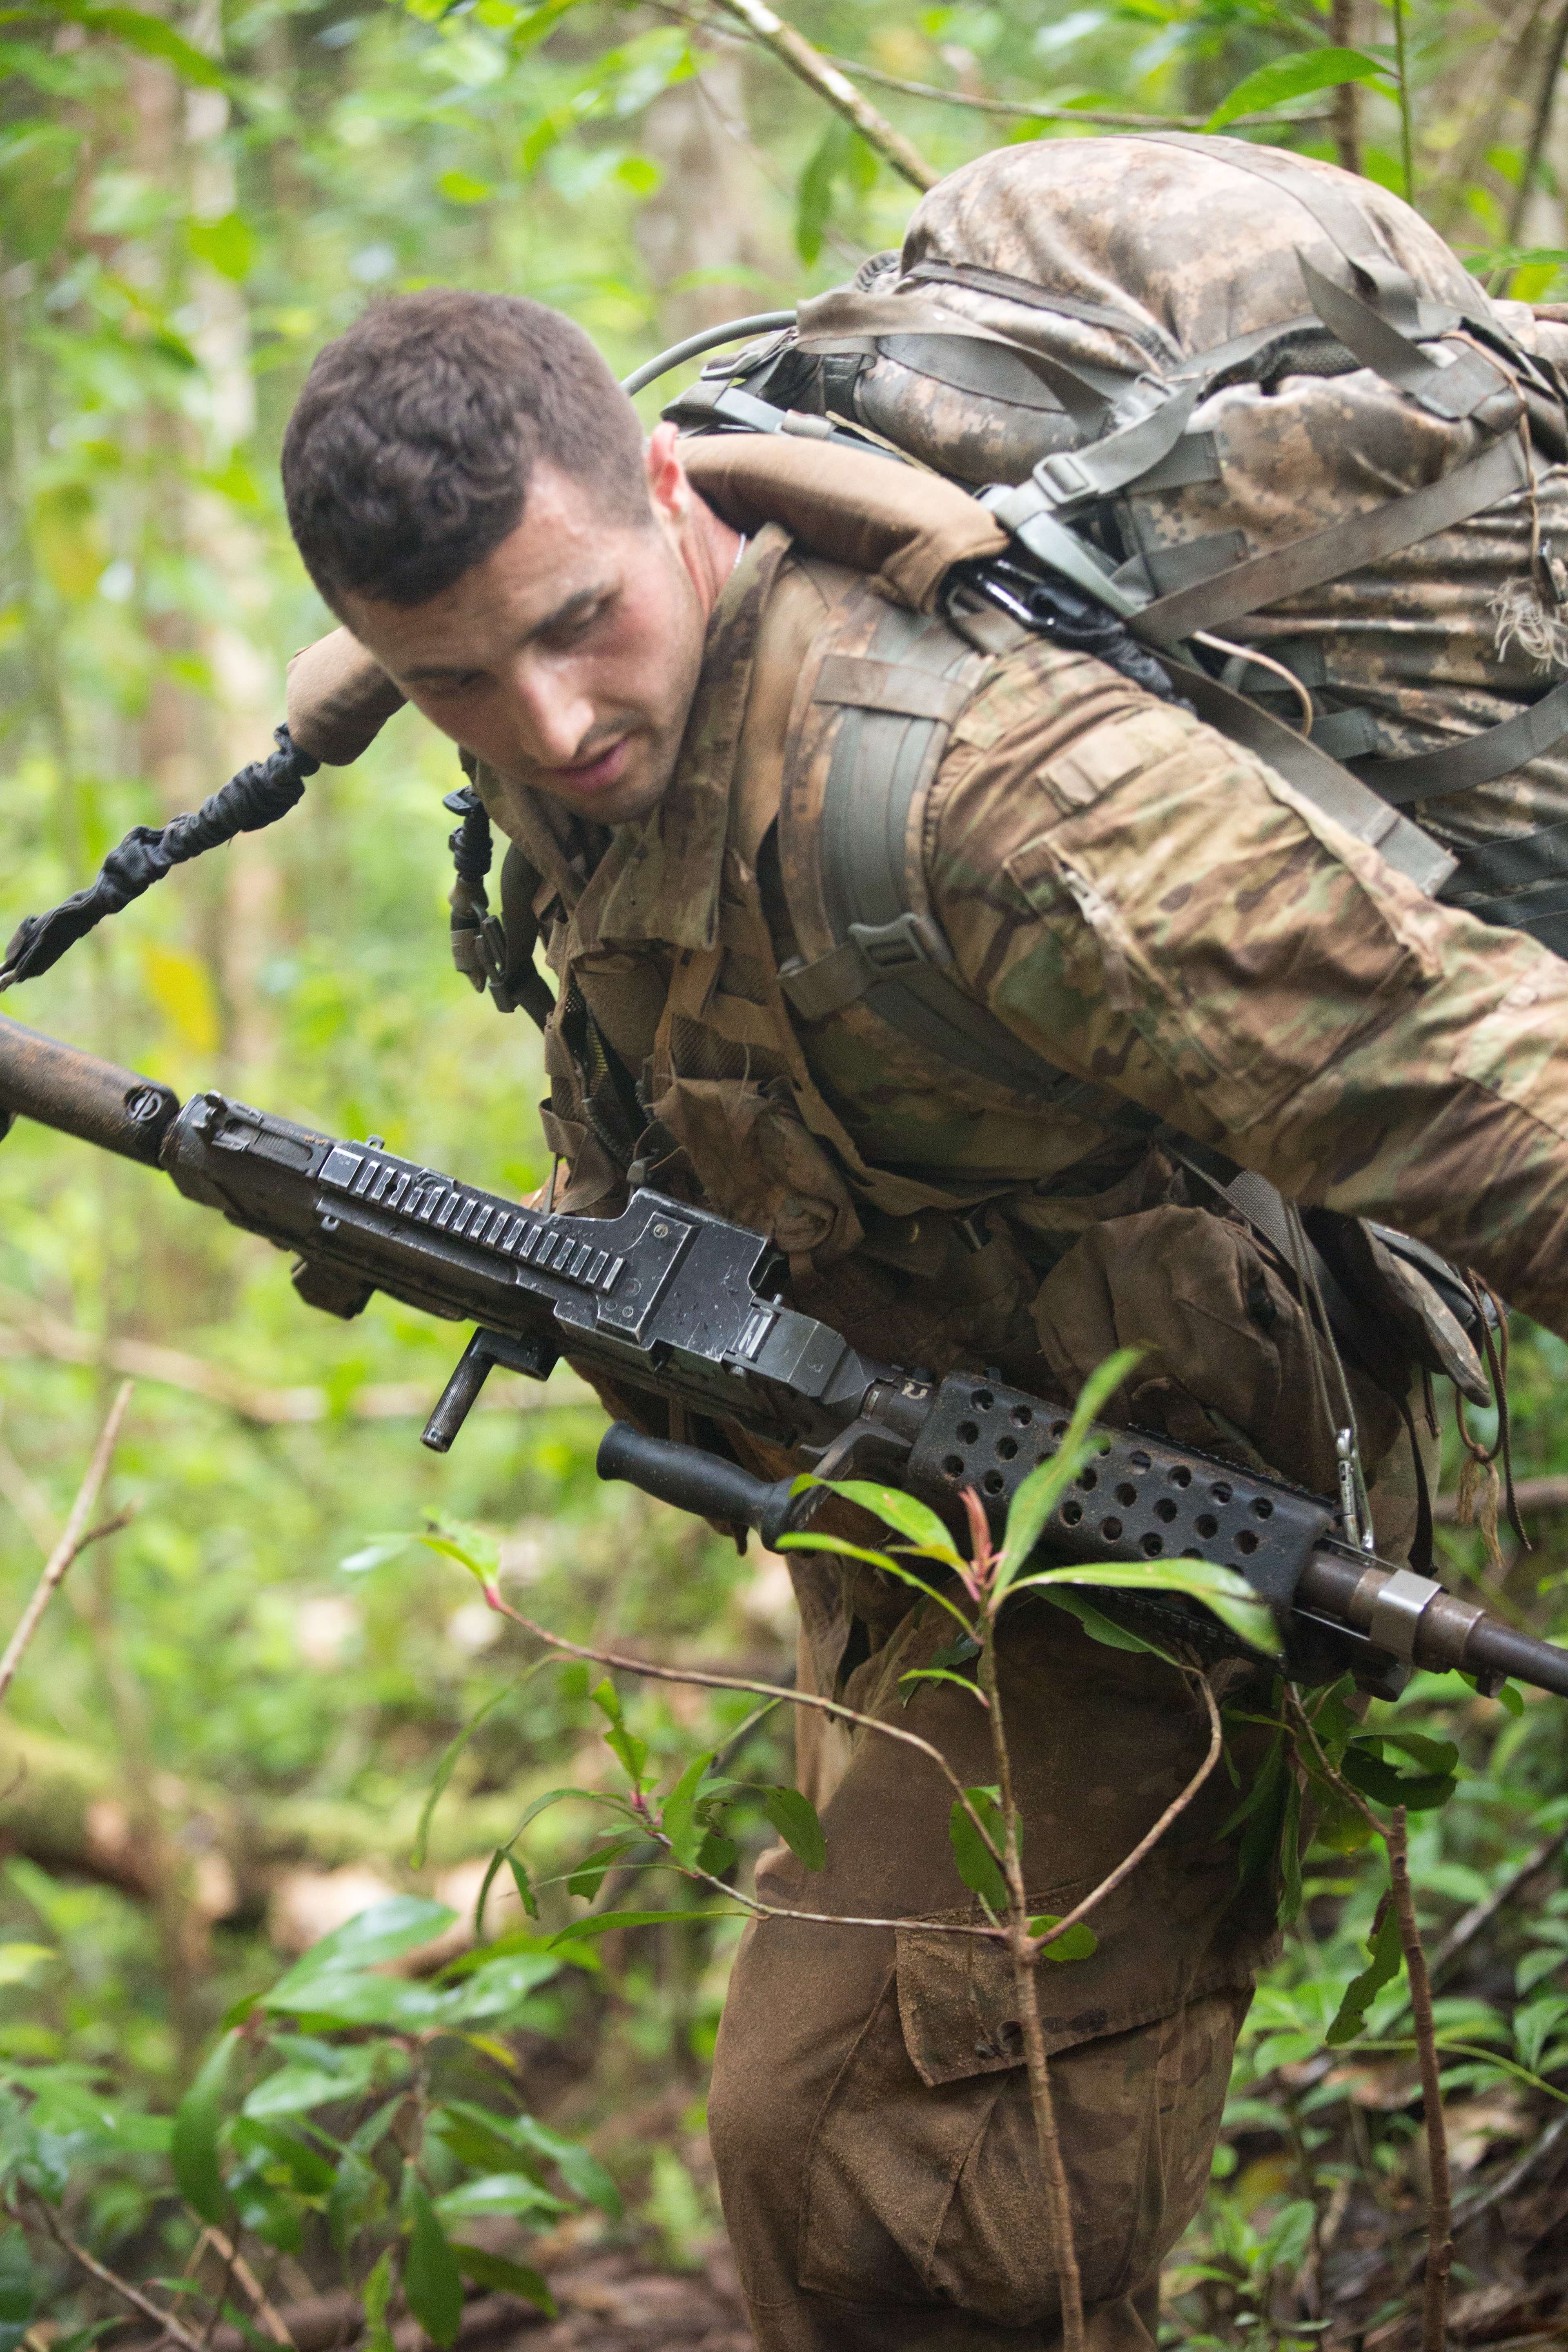 Soldiers Try Out New Tropical Uniforms And Boots In Jungle